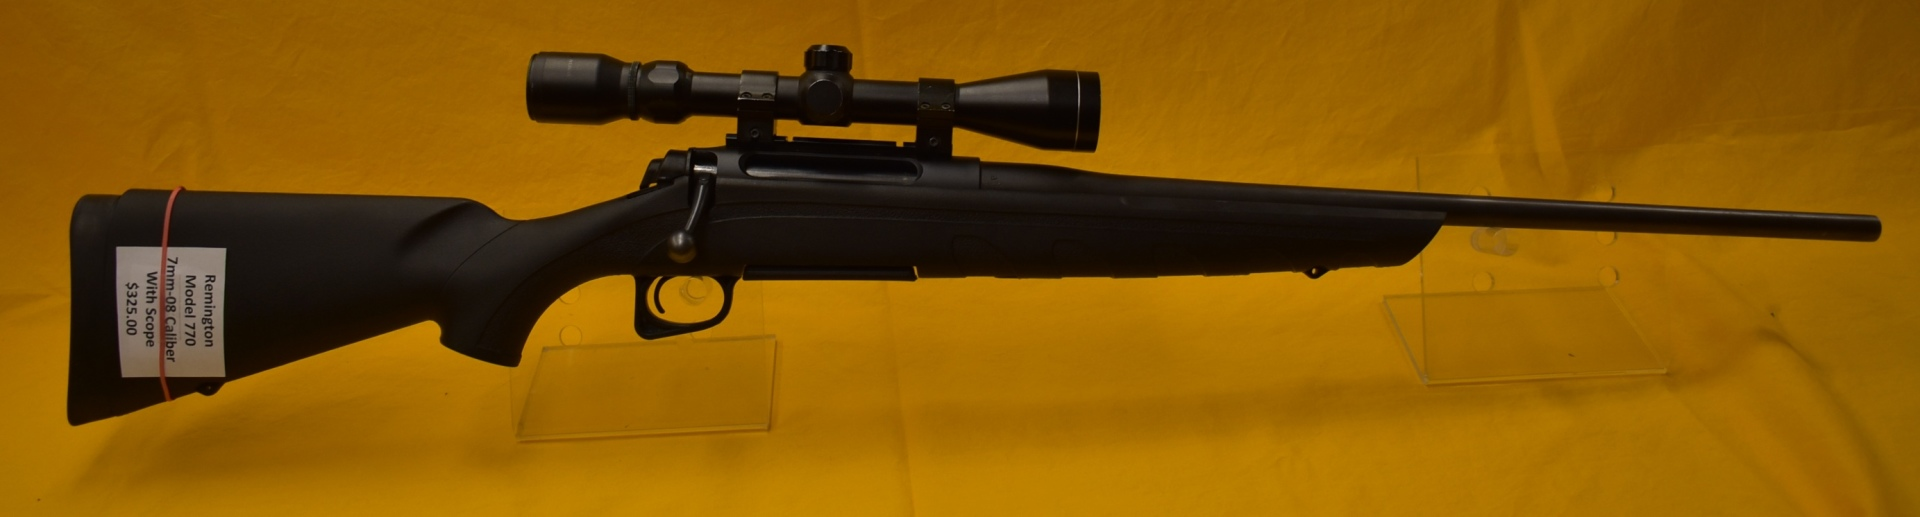 Remington 770 7mm-08 caliber